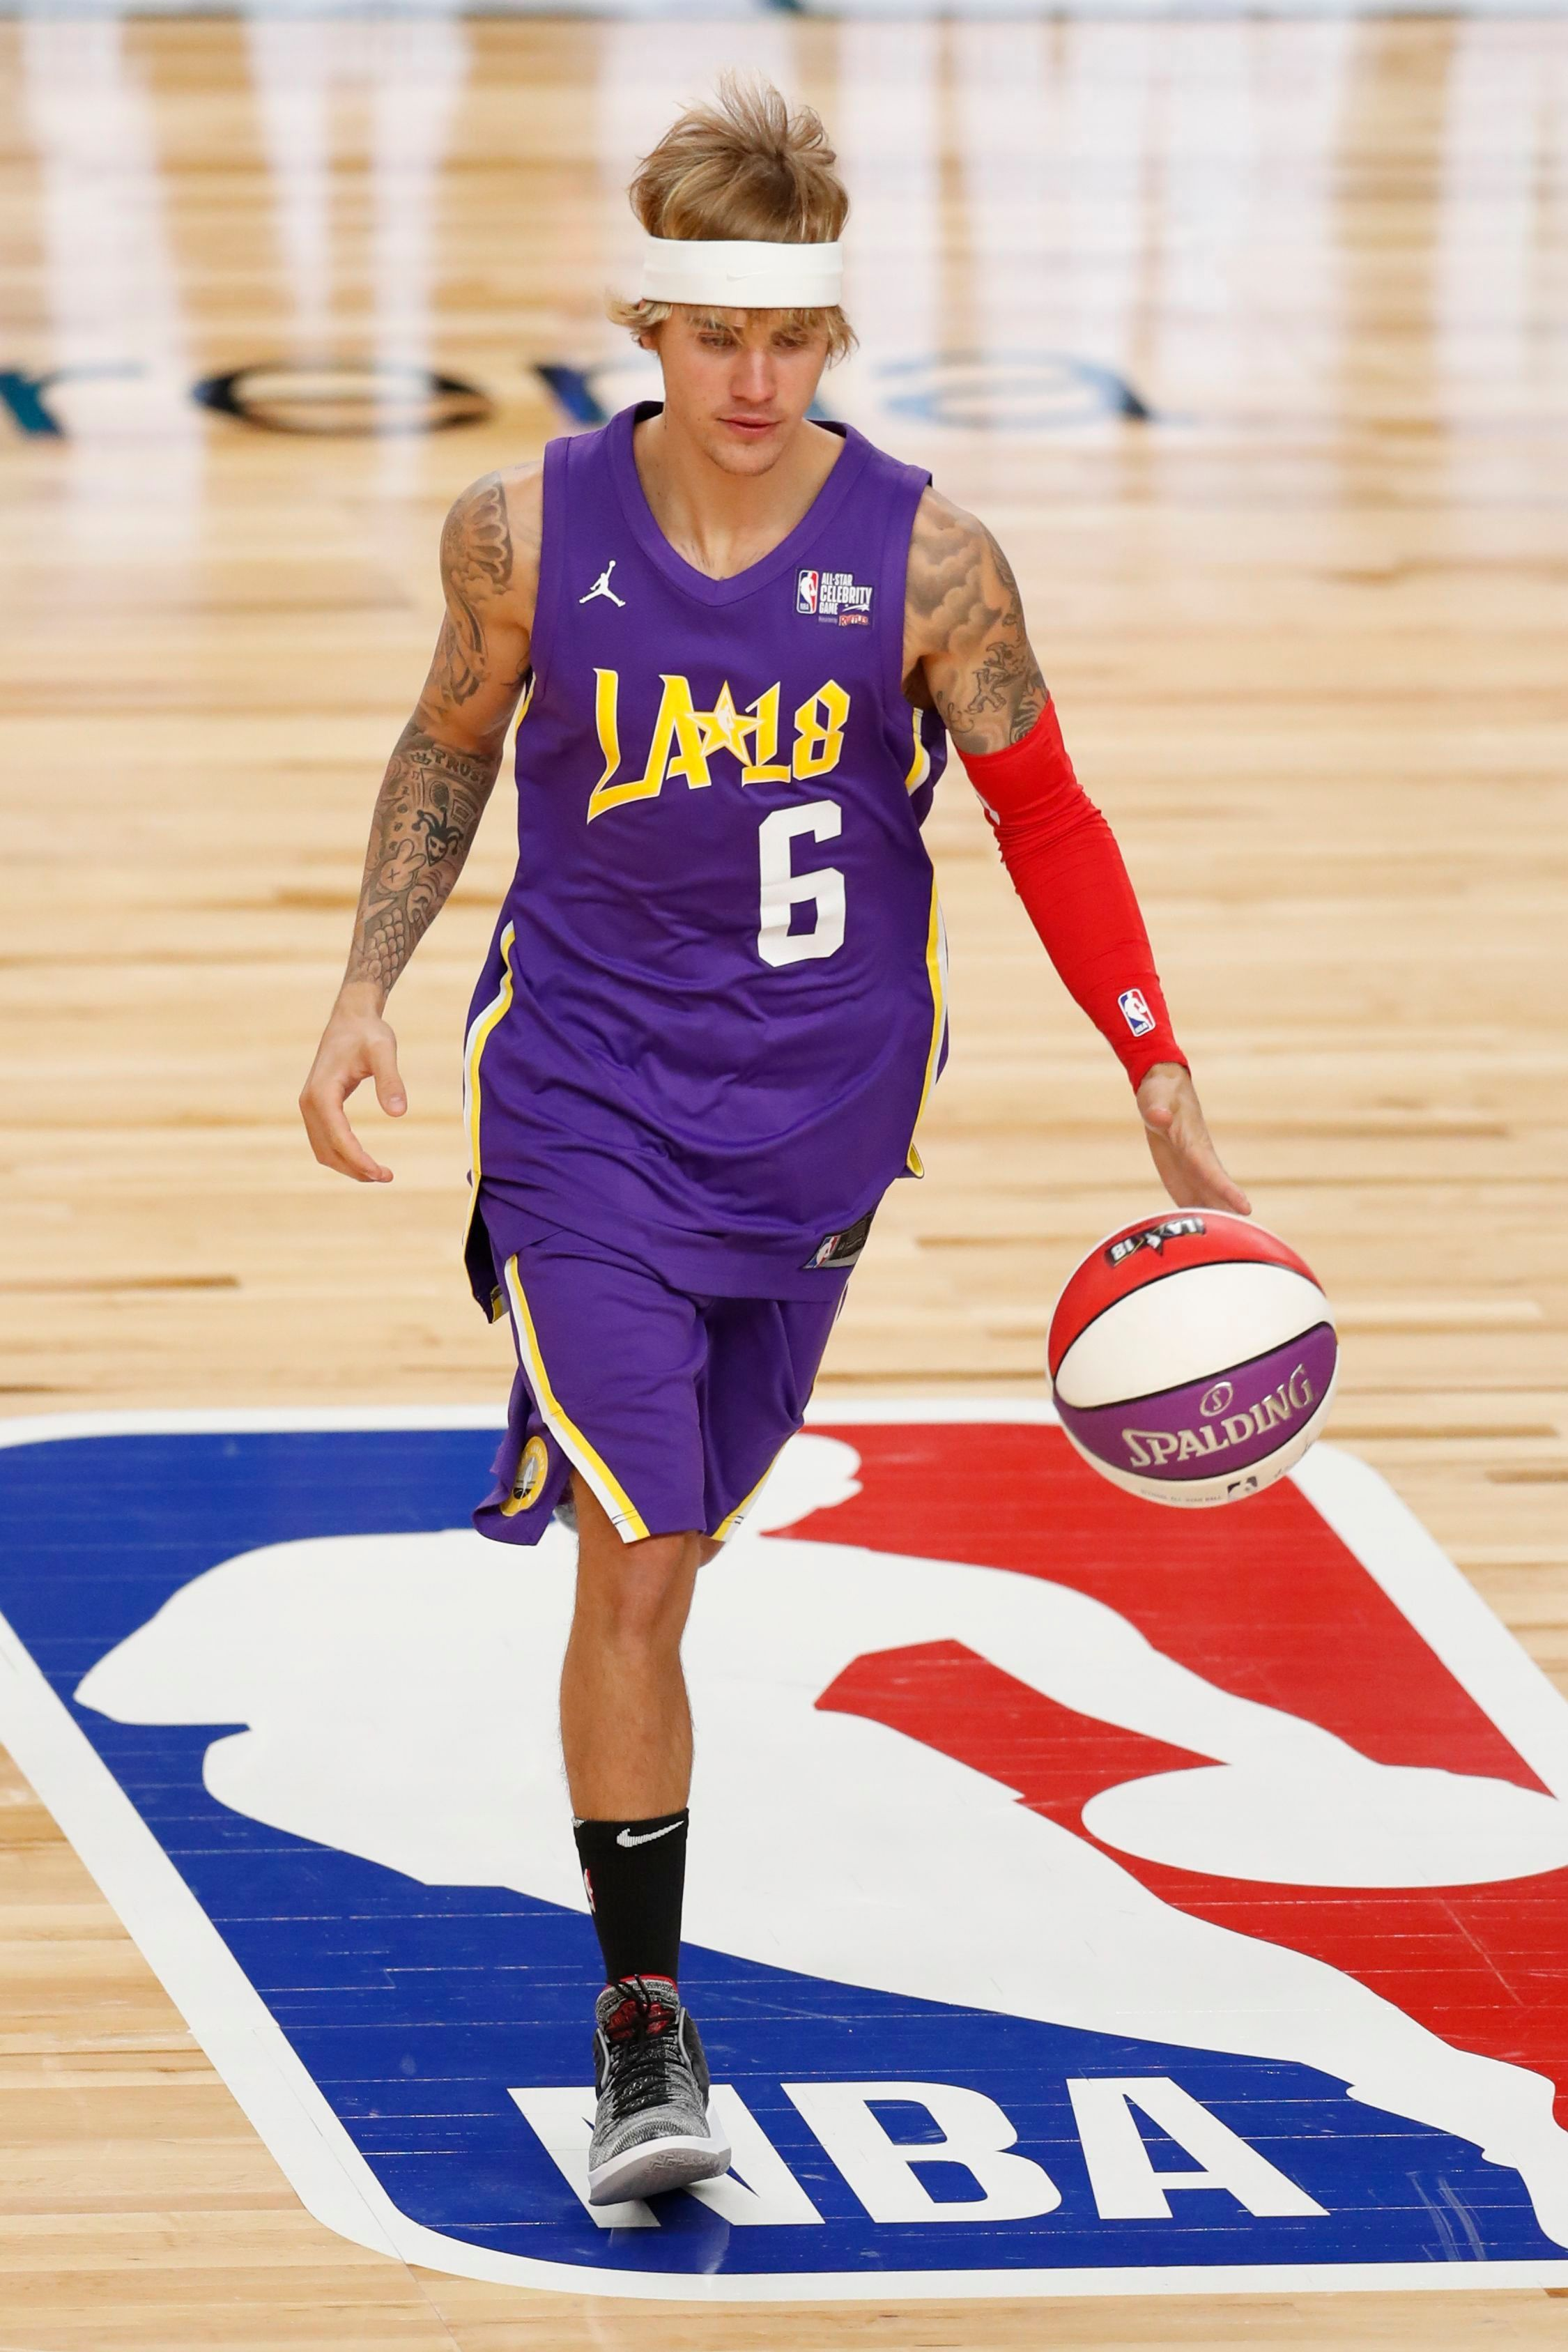 Justin Bieber plays during the NBA All Star Celebrity Game in Los Angeles on Feb. 16, 2018.